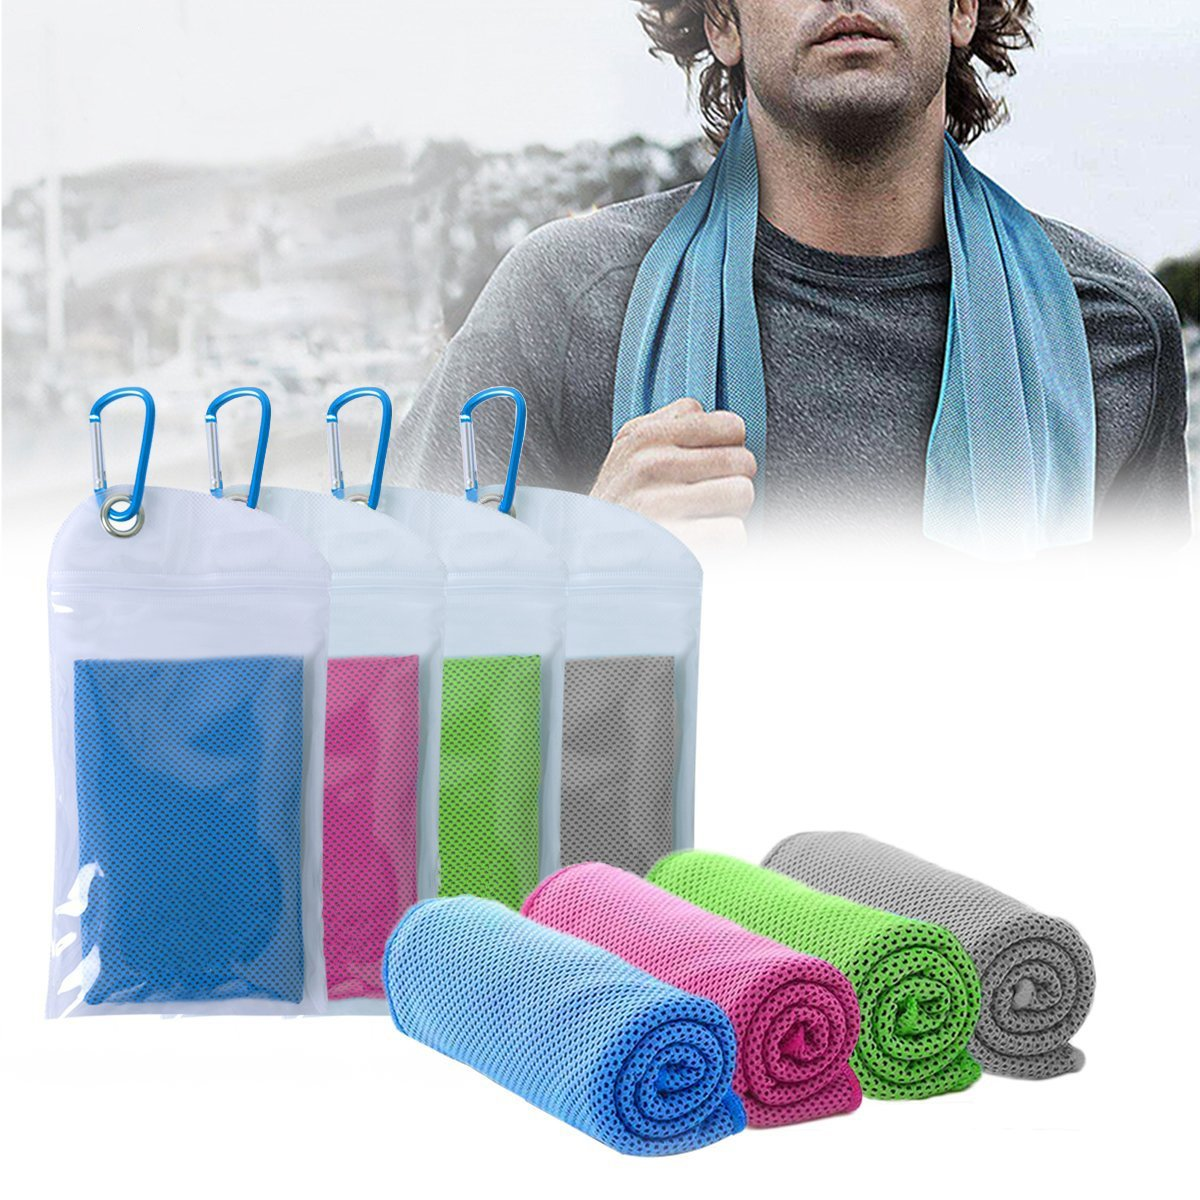 FIRSTBUY Cooling Towel for Instant Cooling Relief, Chilling Neck Wrap, ice cool snap towel, Microfiber Bandana - Chilly Towel For Golf Travel Sports Workout Fitness Gym Yoga Pilates Camping (Blue)